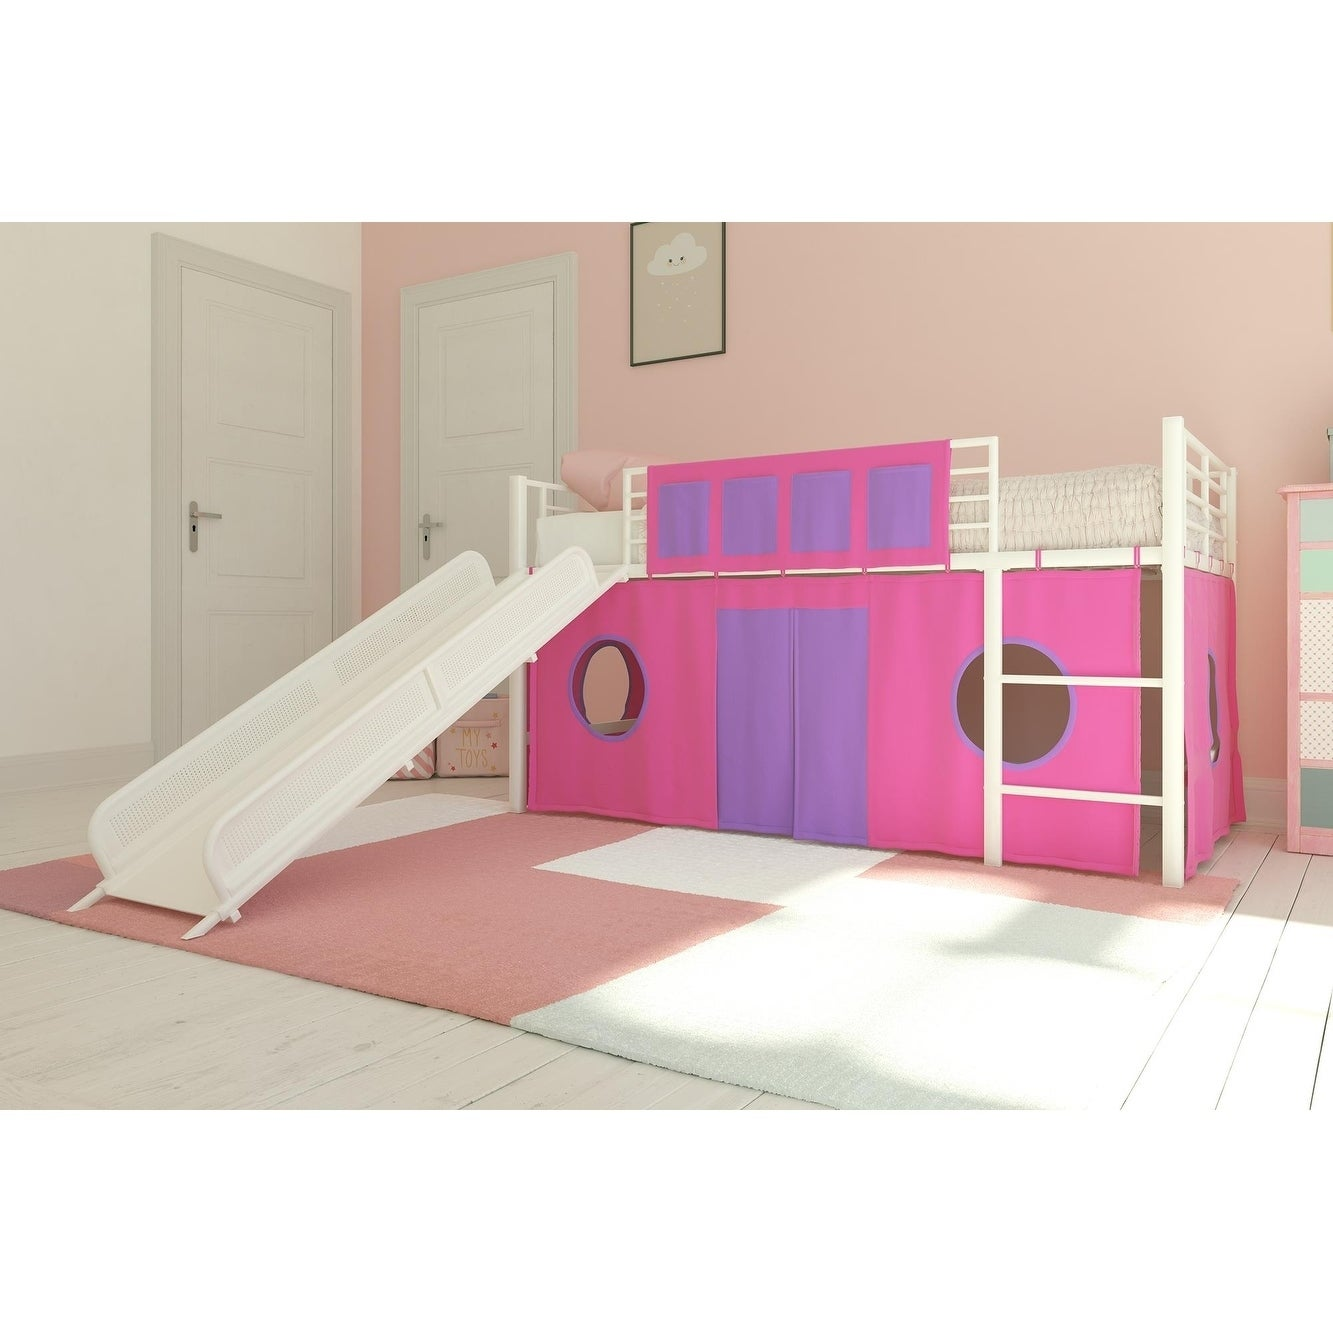 Shop Dhp Junior Twin Loft Bed With Slide And Curtain Set